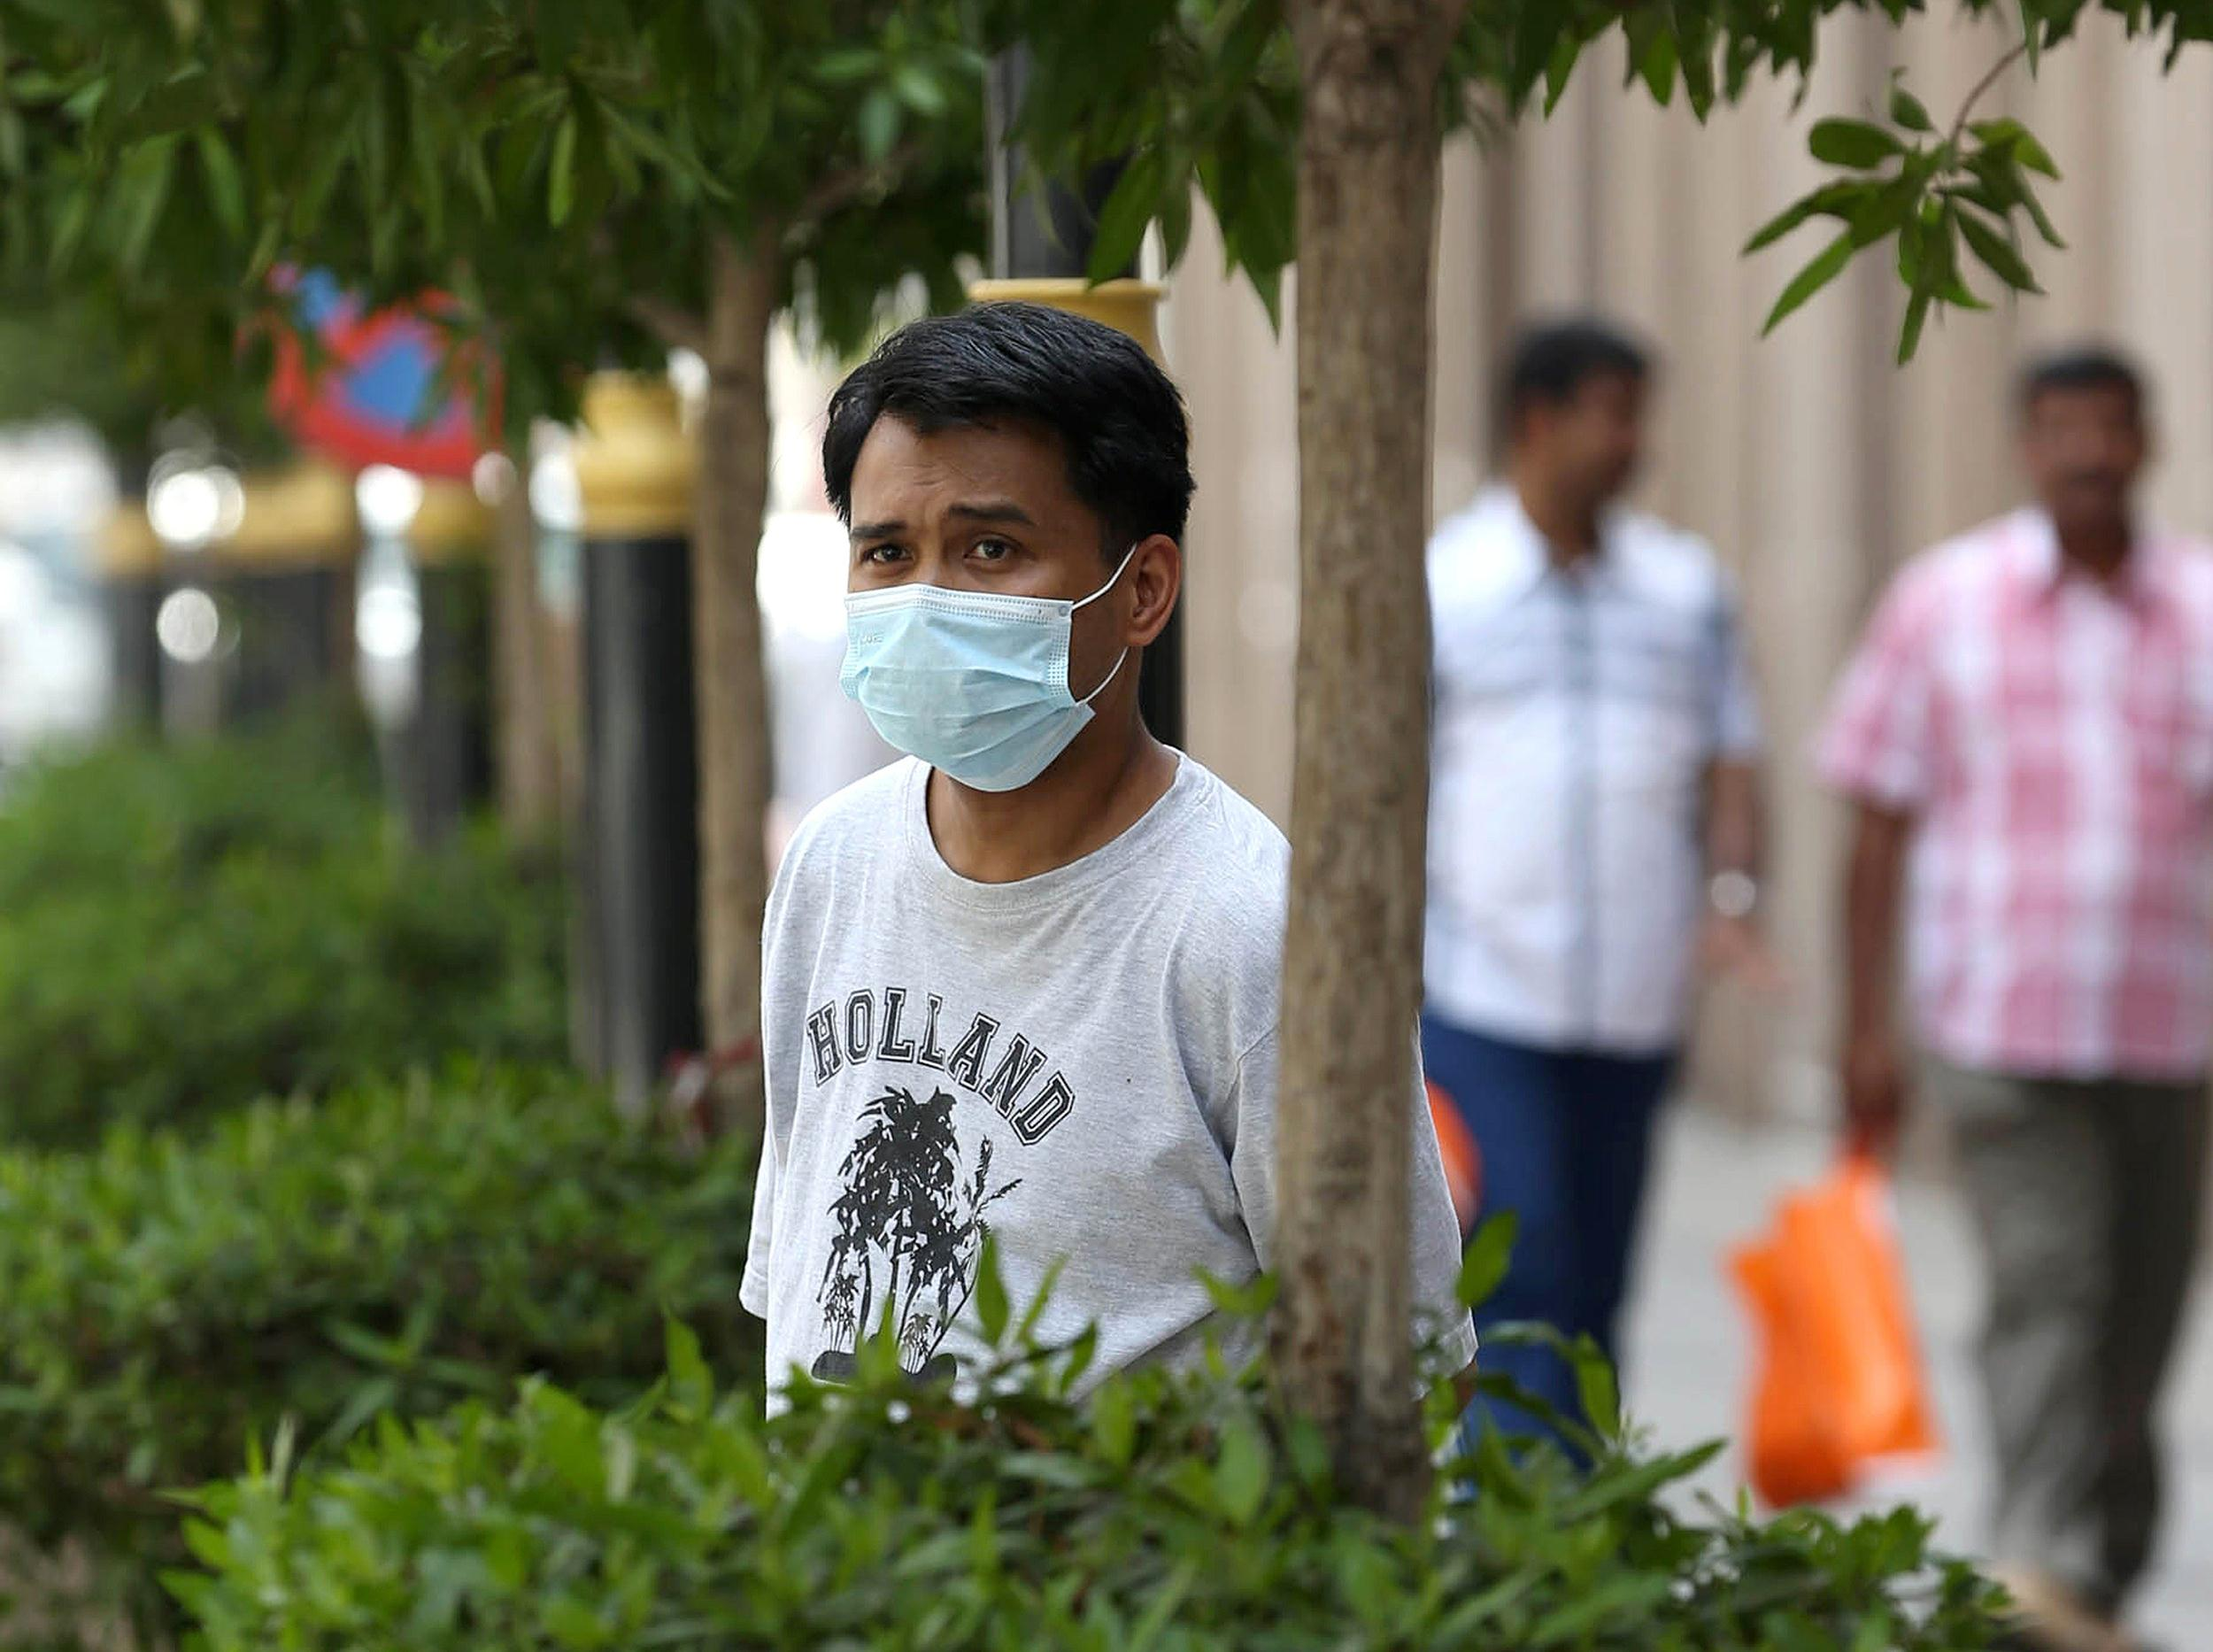 Image: An Asian man wears a mouth and nose mask as he walks in a street of the Red Sea coastal city of Jeddah